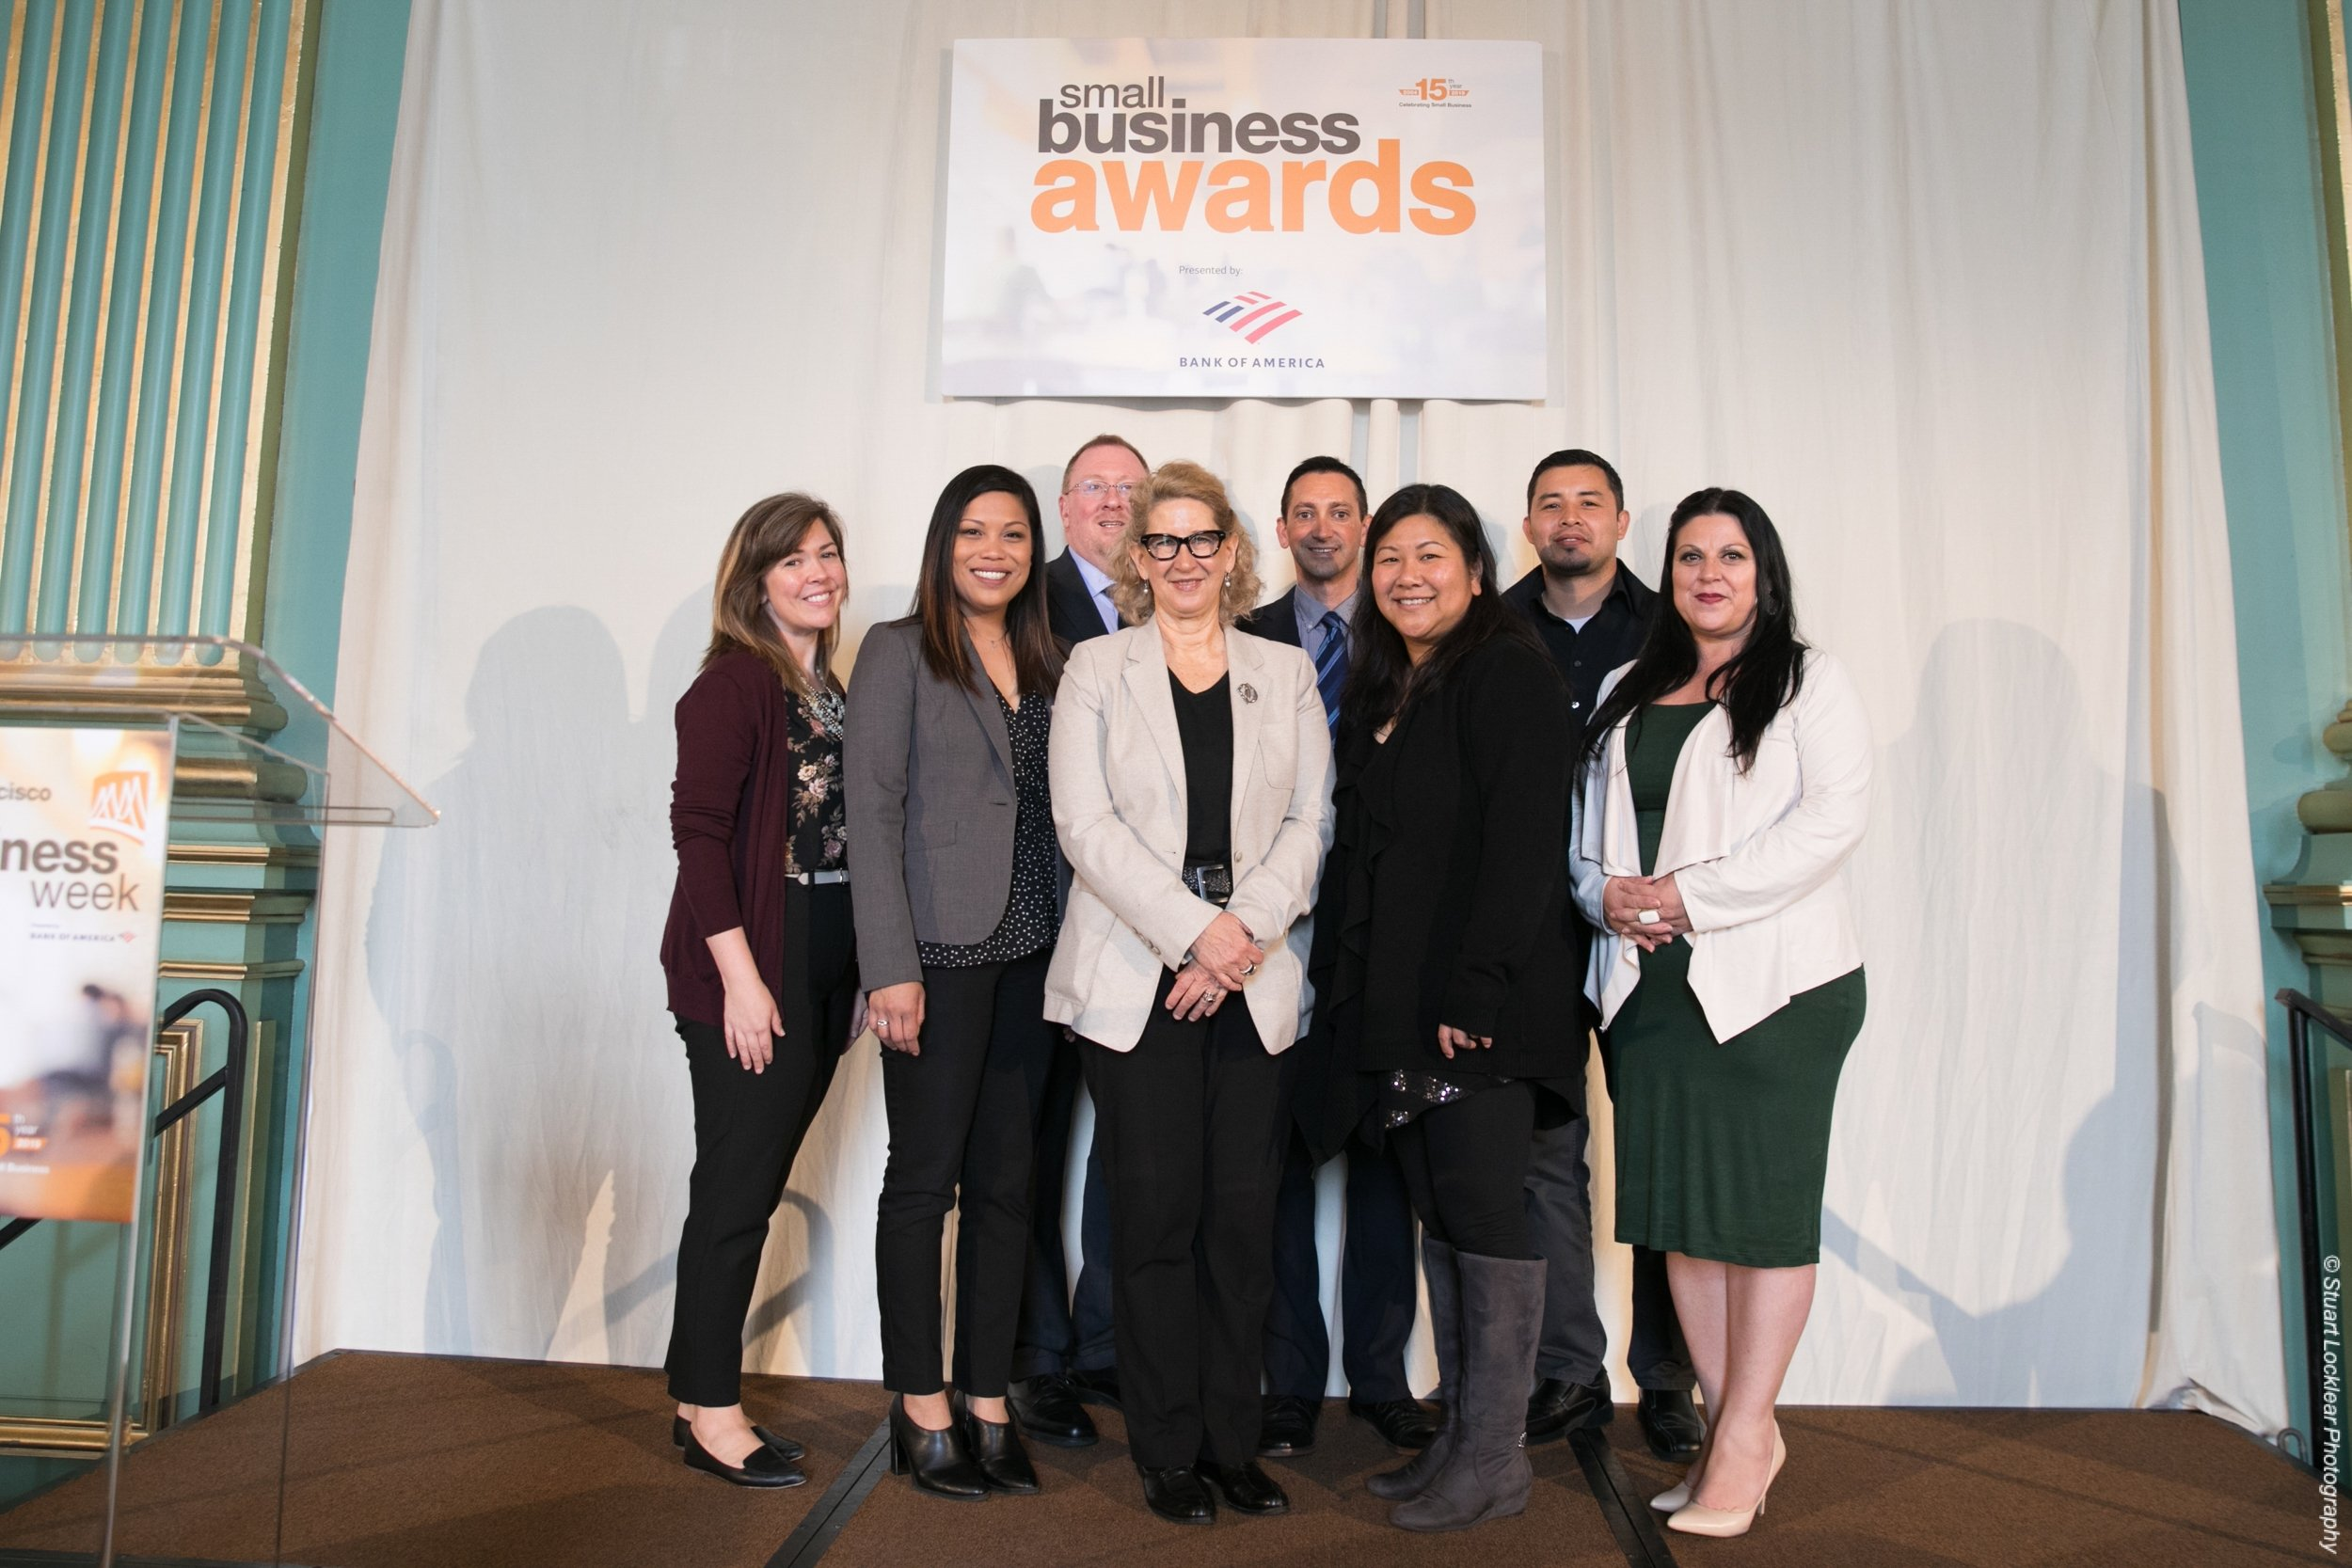 A formal group picture at San Francisco's Small Business week Conference/Summit, on the stage for the Small Business Awards.